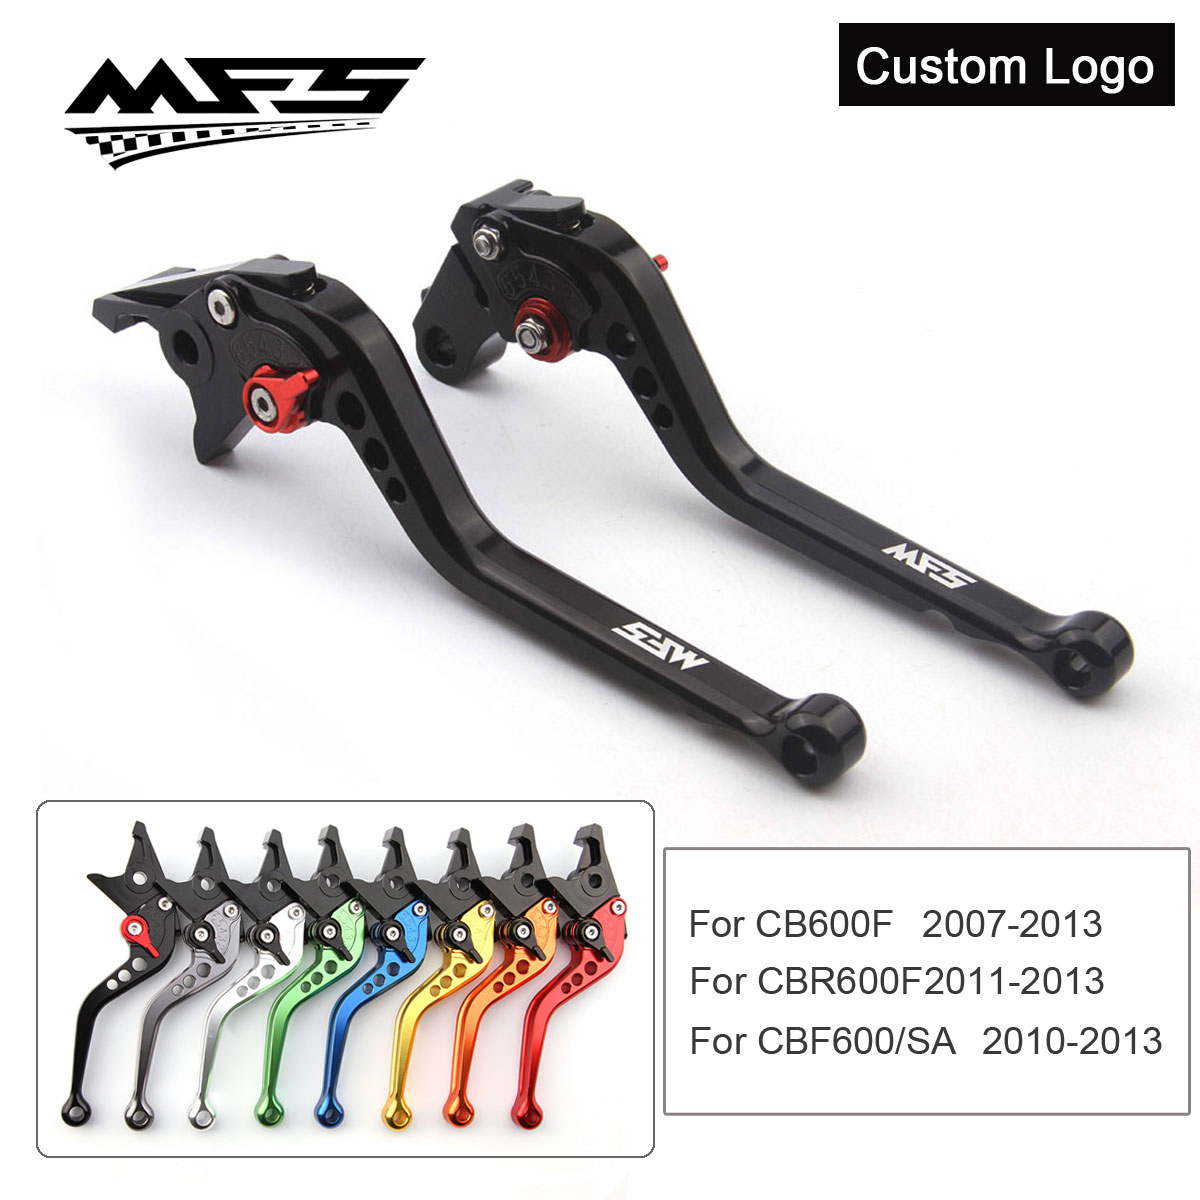 CNC Brake Clutch Levers Handle For Honda CB600F 2007 2013 CBR600F CBF600 SA 2010 2013 Motorcycle Brake Levers in Levers Ropes Cables from Automobiles Motorcycles